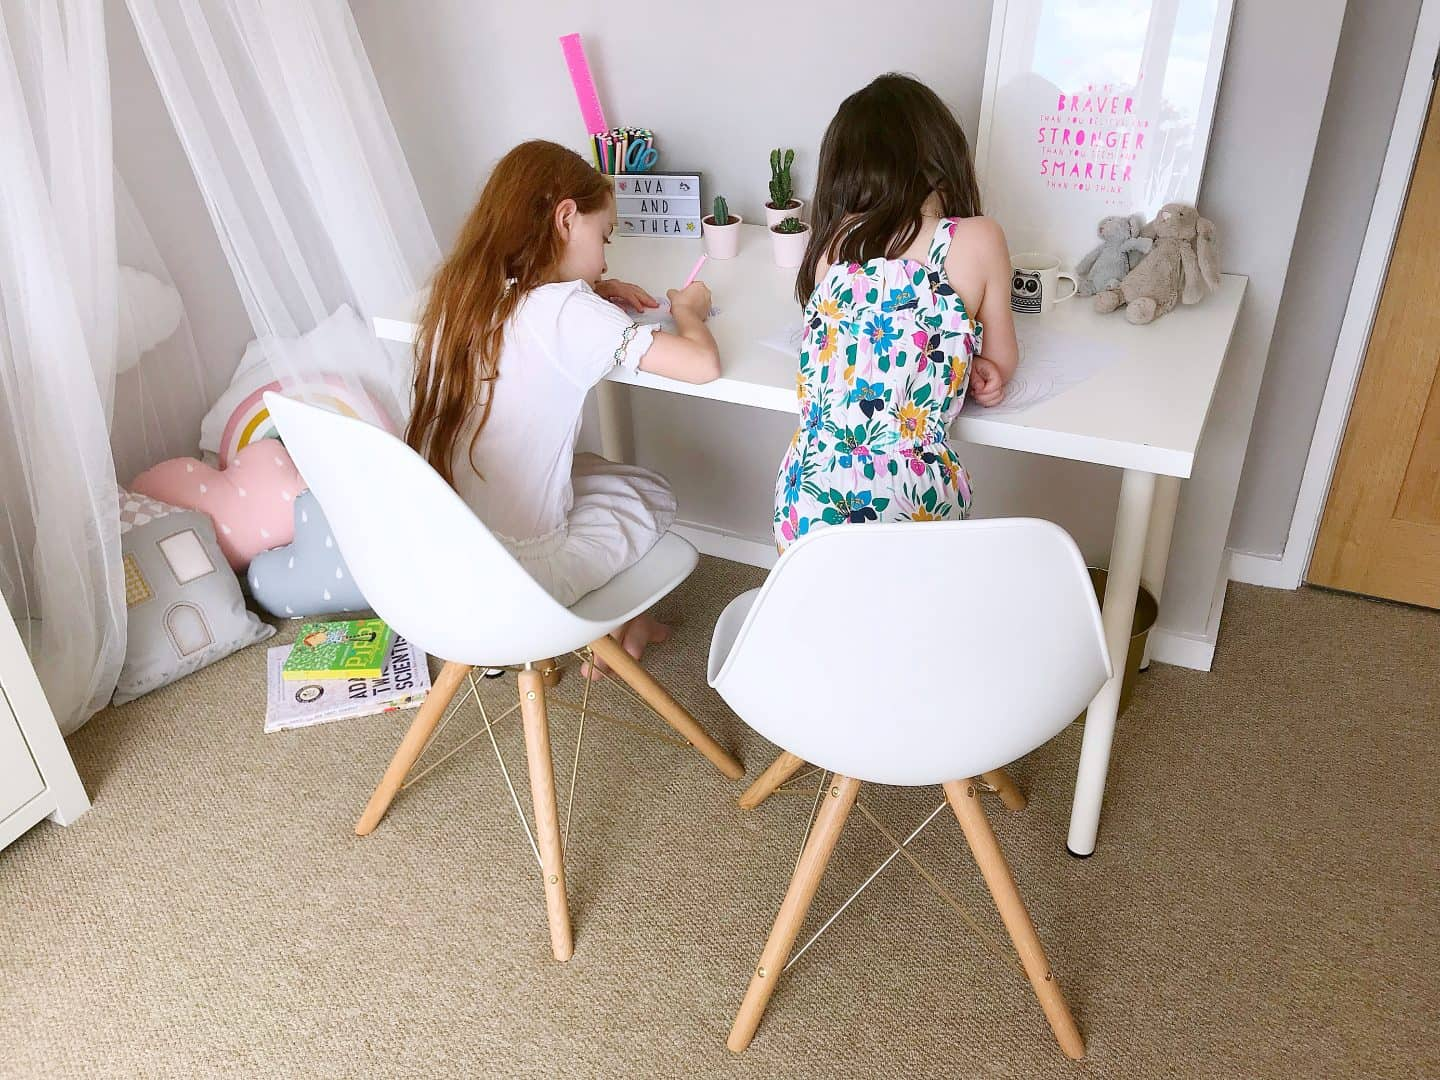 Getting creative with the help of White and gold Cult Furniture Moda Chairs - the perfect chairs for kids to grow up with